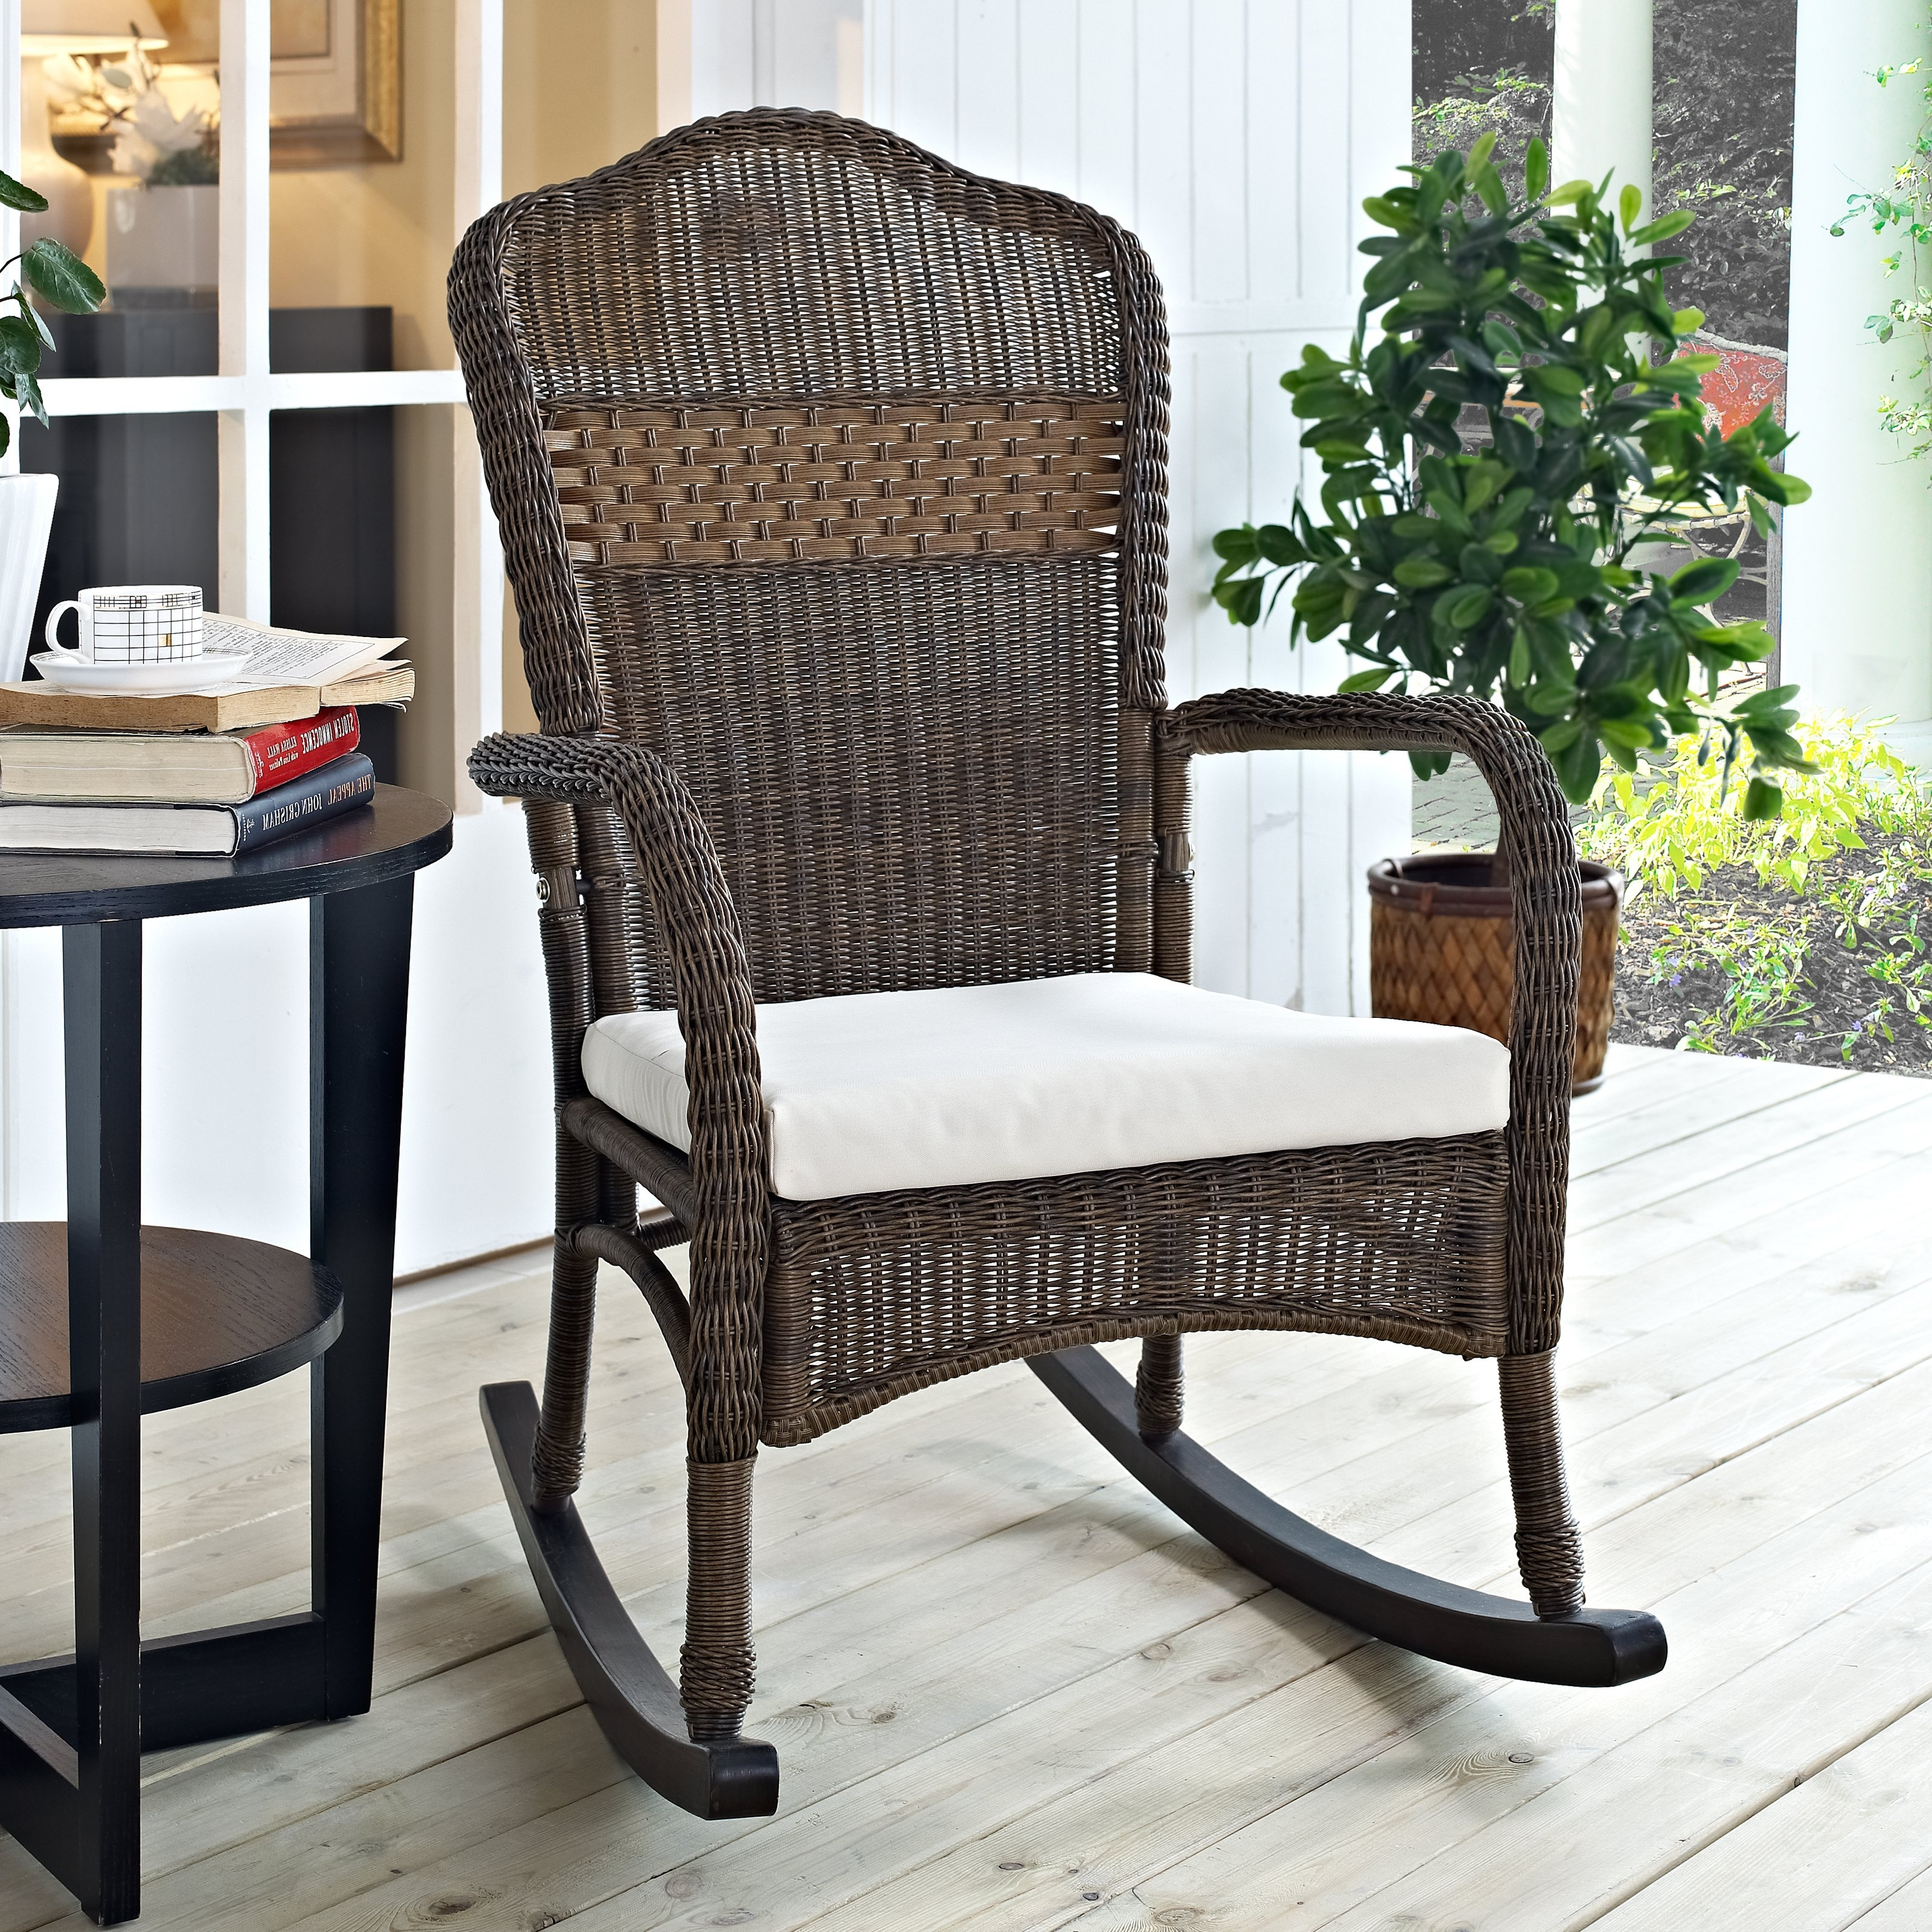 Coral Coast Mocha Resin Wicker Rocking Chair With Beige Cushion Pertaining To Well Known Outdoor Wicker Rocking Chairs (View 3 of 15)